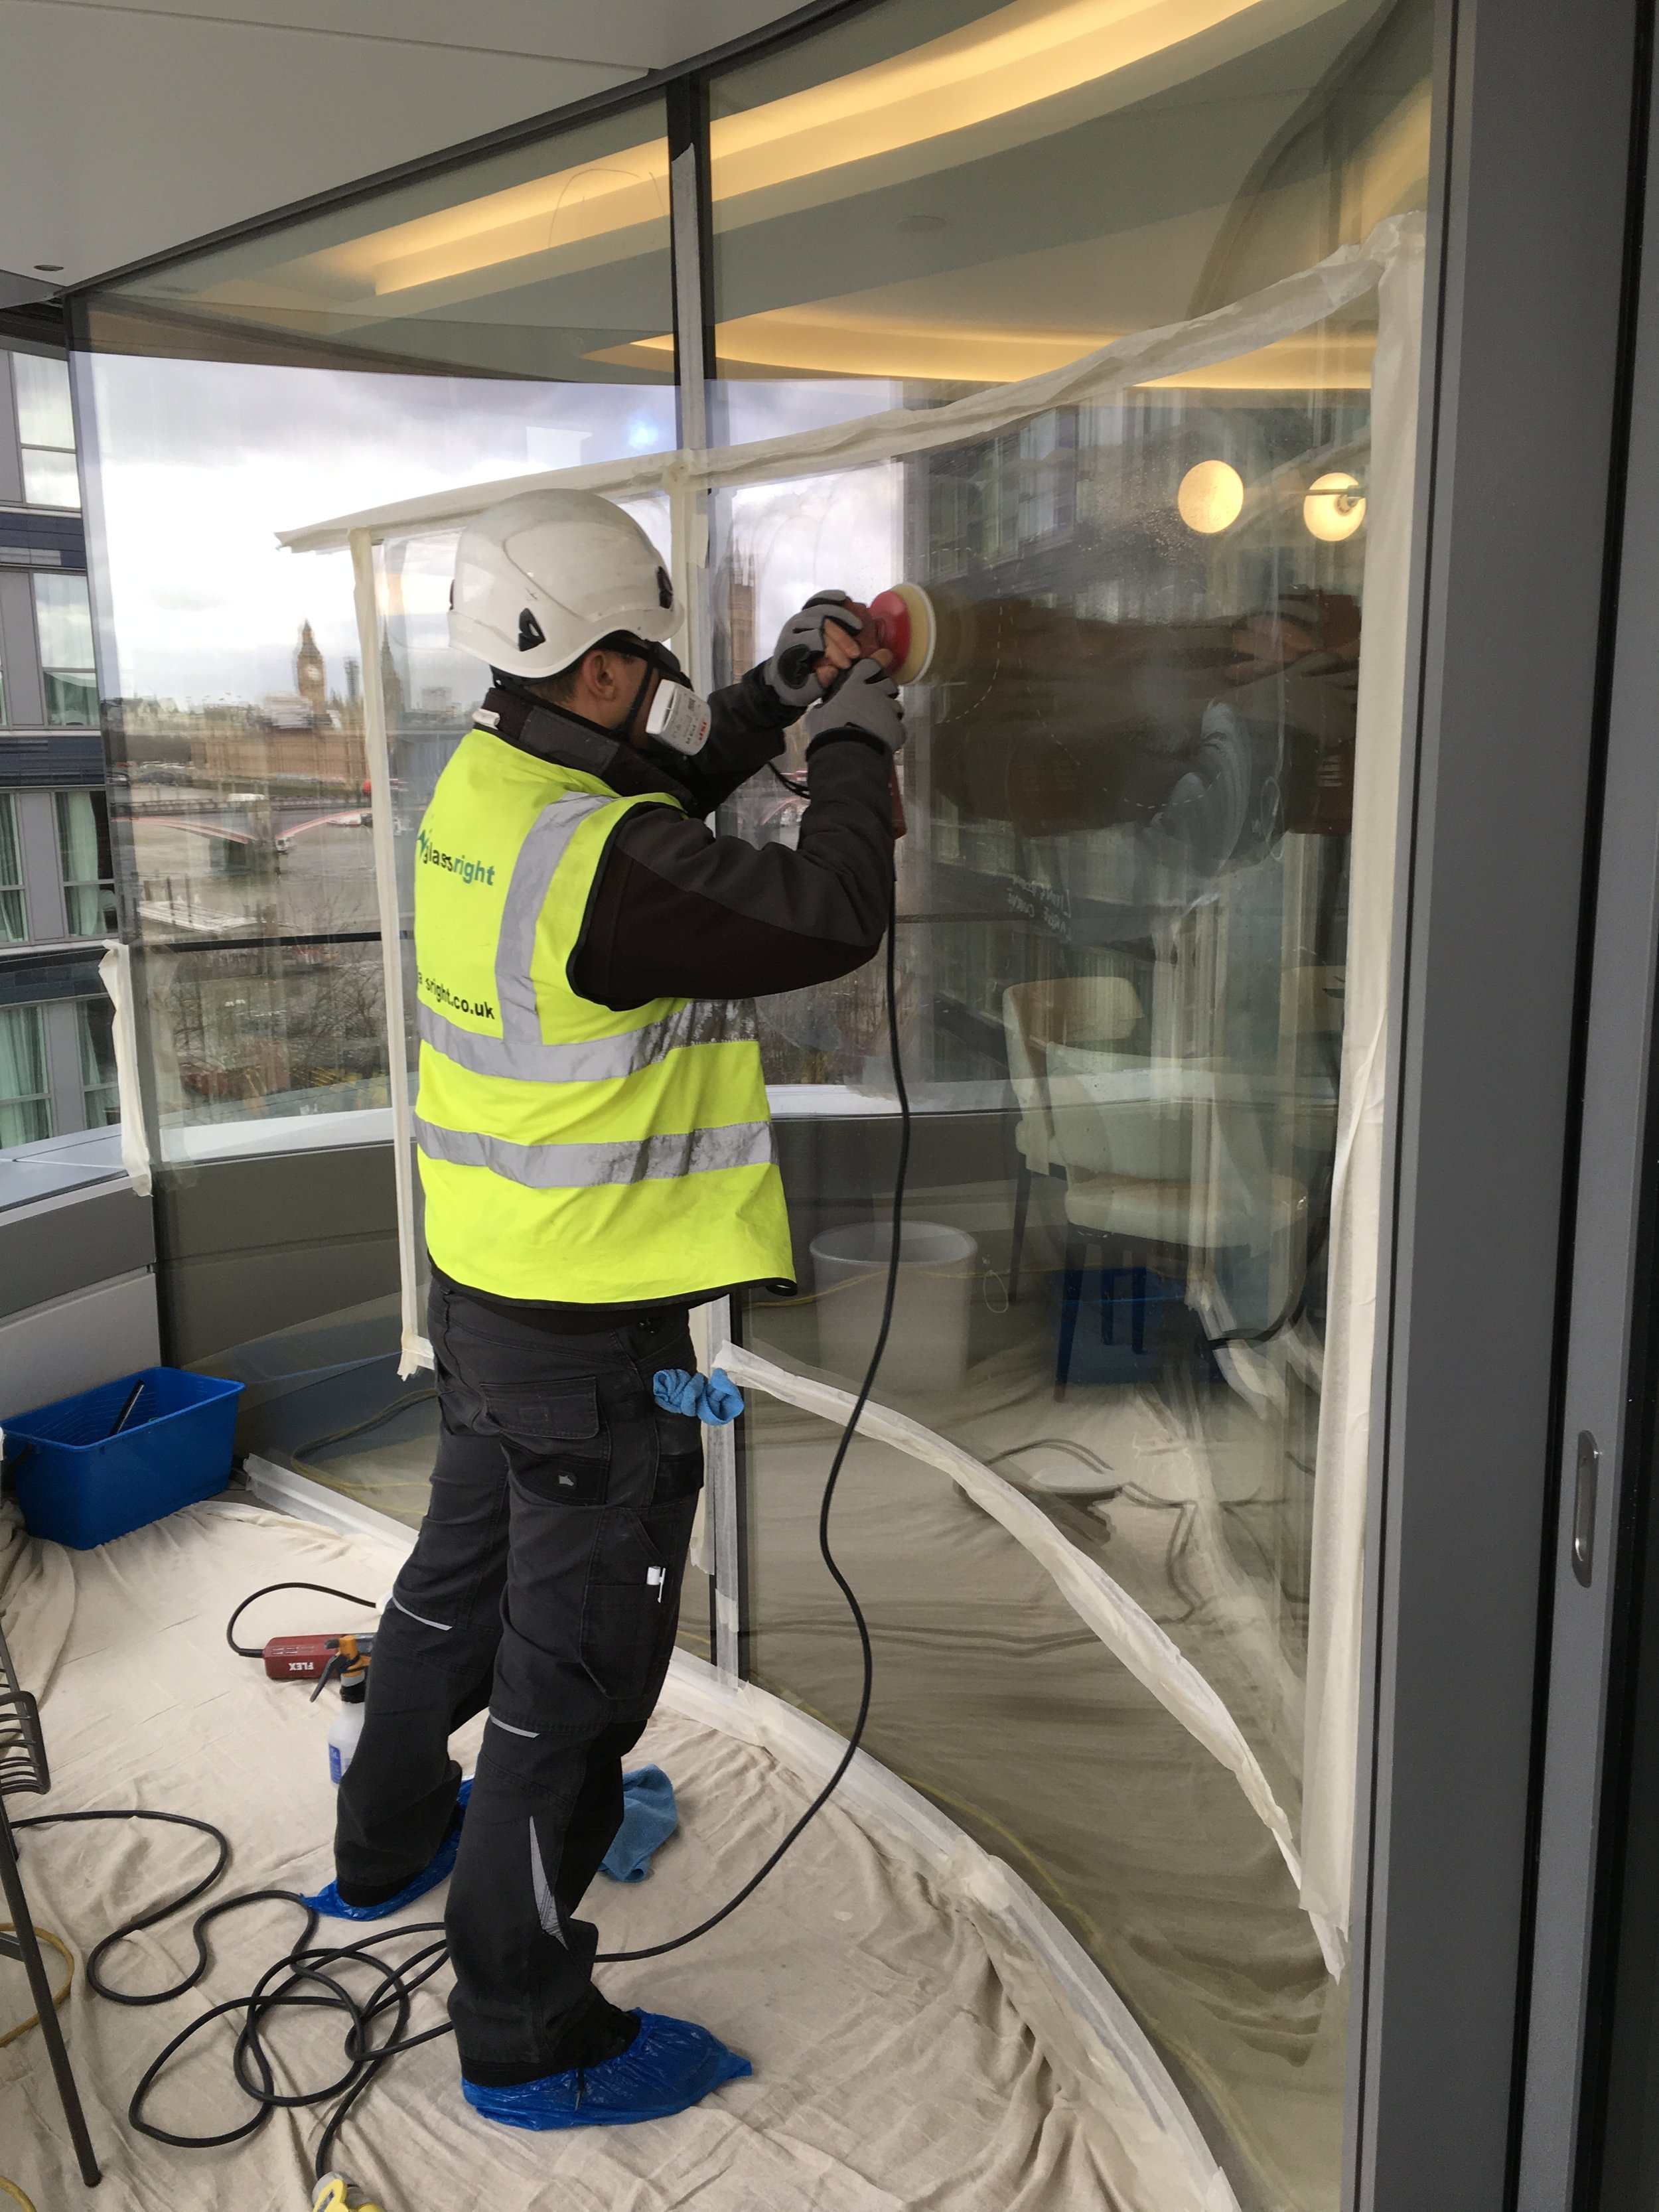 Polishing to external face of curved glass structurally bonded to balcony.